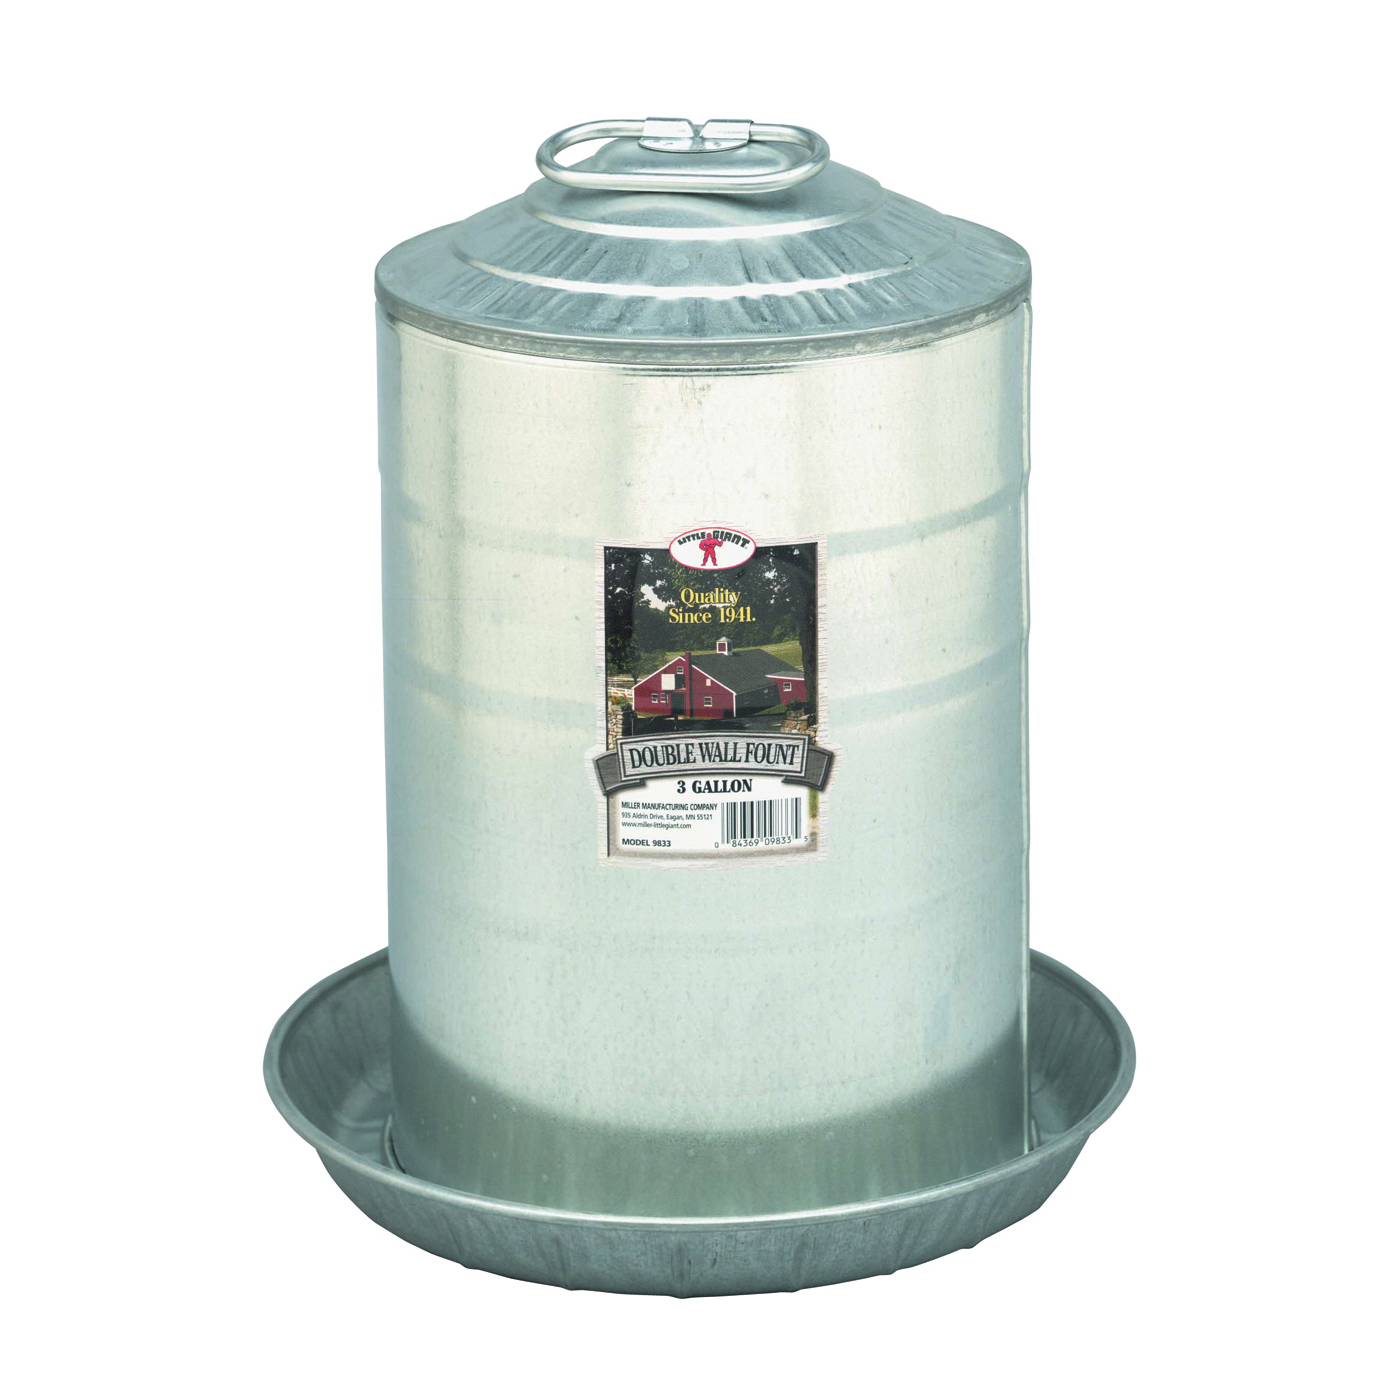 Picture of Little Giant 9833 Poultry Fount, 3 gal Capacity, Galvanized Steel, Floor, Ground Mounting